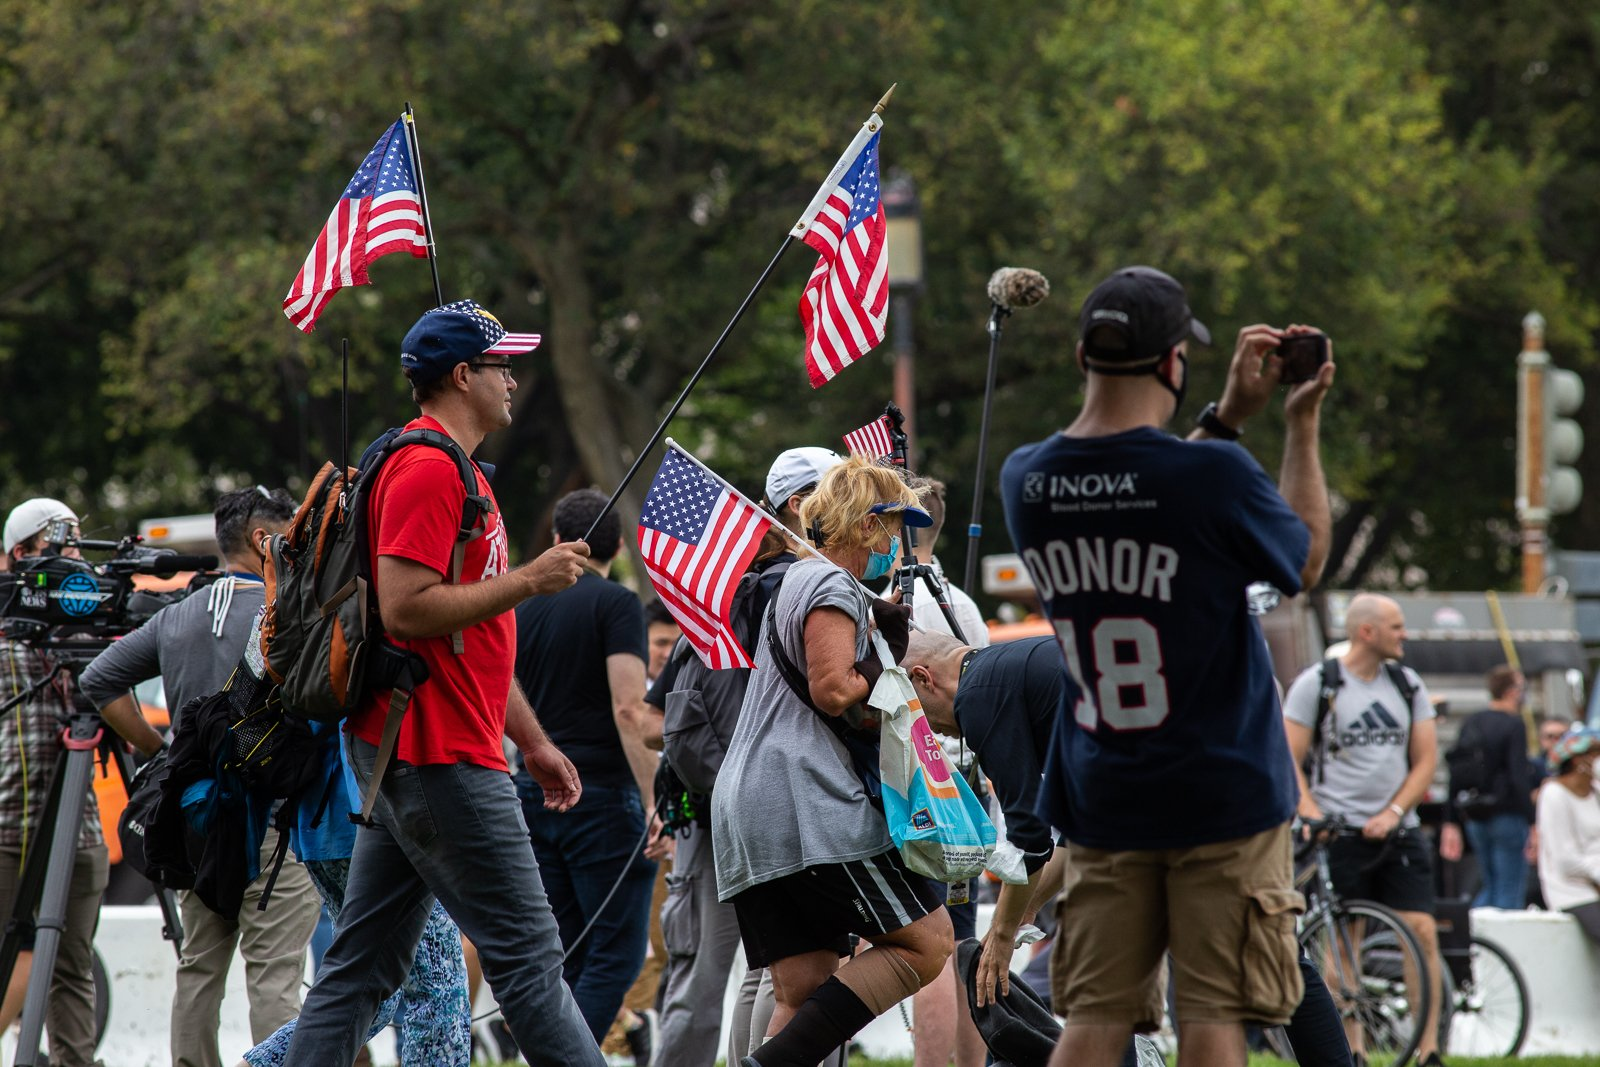 """Several people carried American flags and signs in support of people jailed in connection with the Capitol riot at the """"Justice for J6"""" rally in Washington, D.C. on September 18, 2021. (Kaylee Greenlee – Daily Caller News Foundation)"""